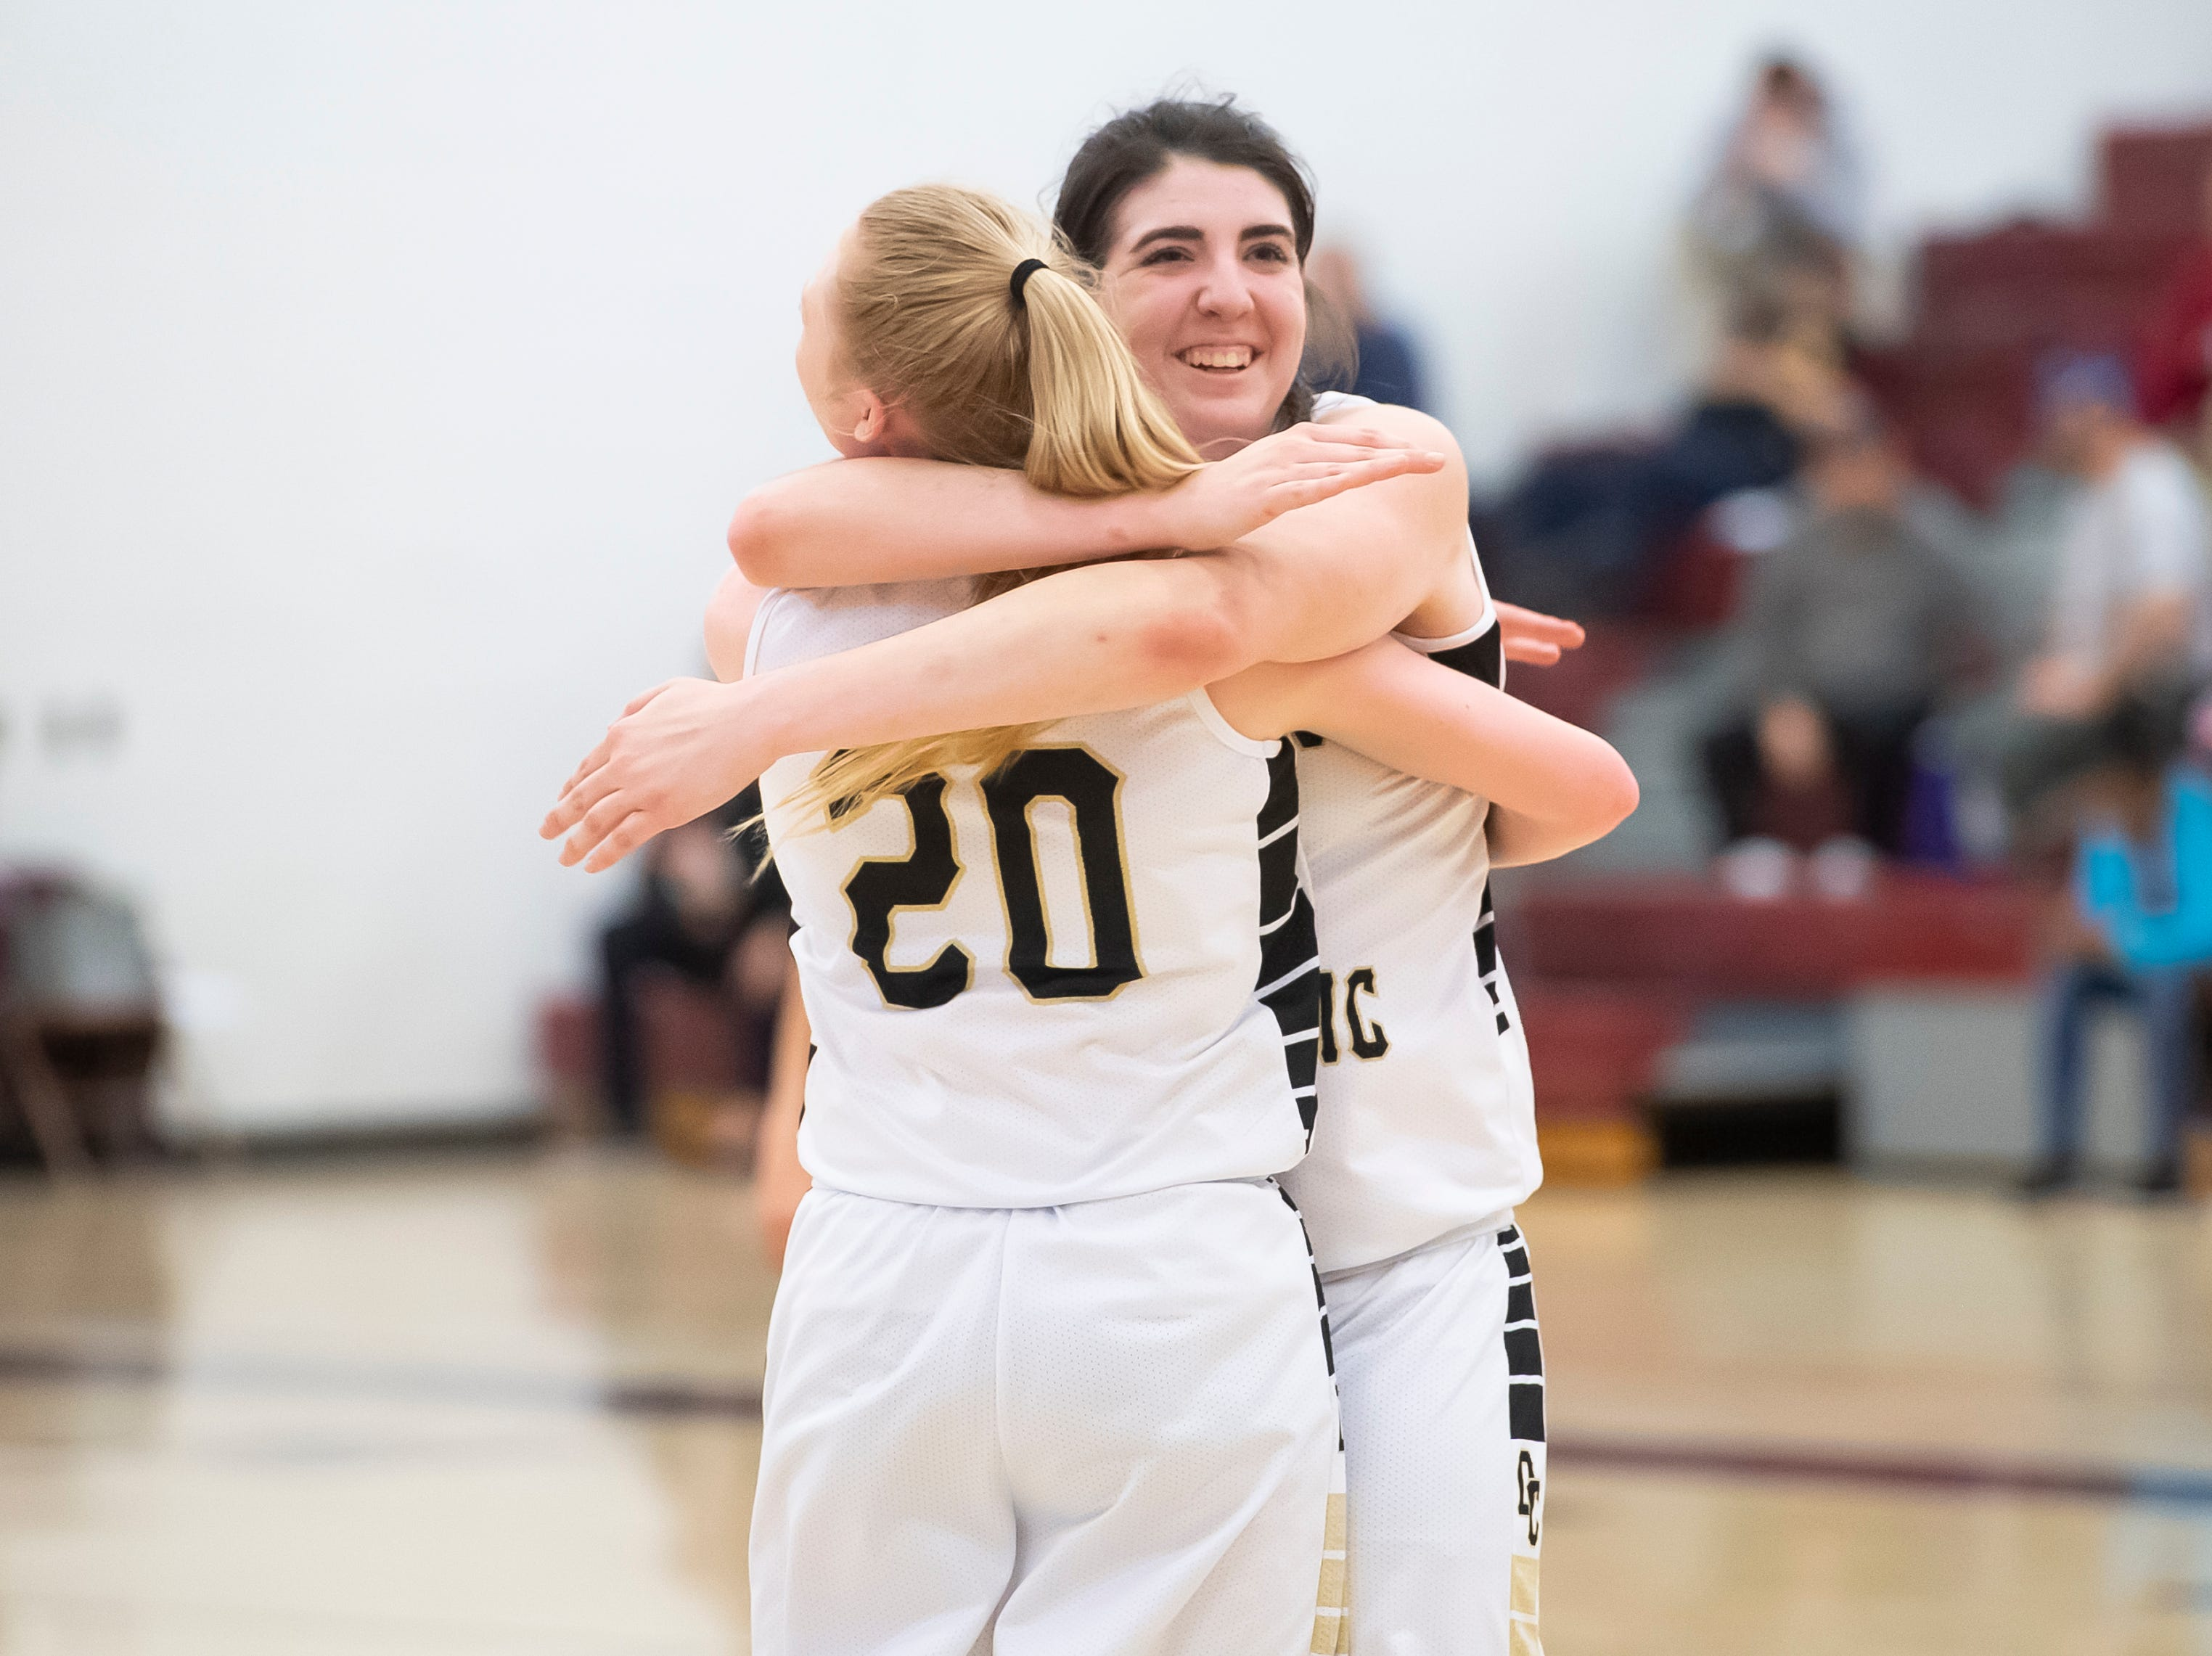 Delone Catholic's Bradi Zumbrum and Brooke Lawyer (20) celebrate after defeating Neshannock 50-41 during a PIAA 3A quarterfinal in Altoona, Pa., on Friday, March 15, 2019.